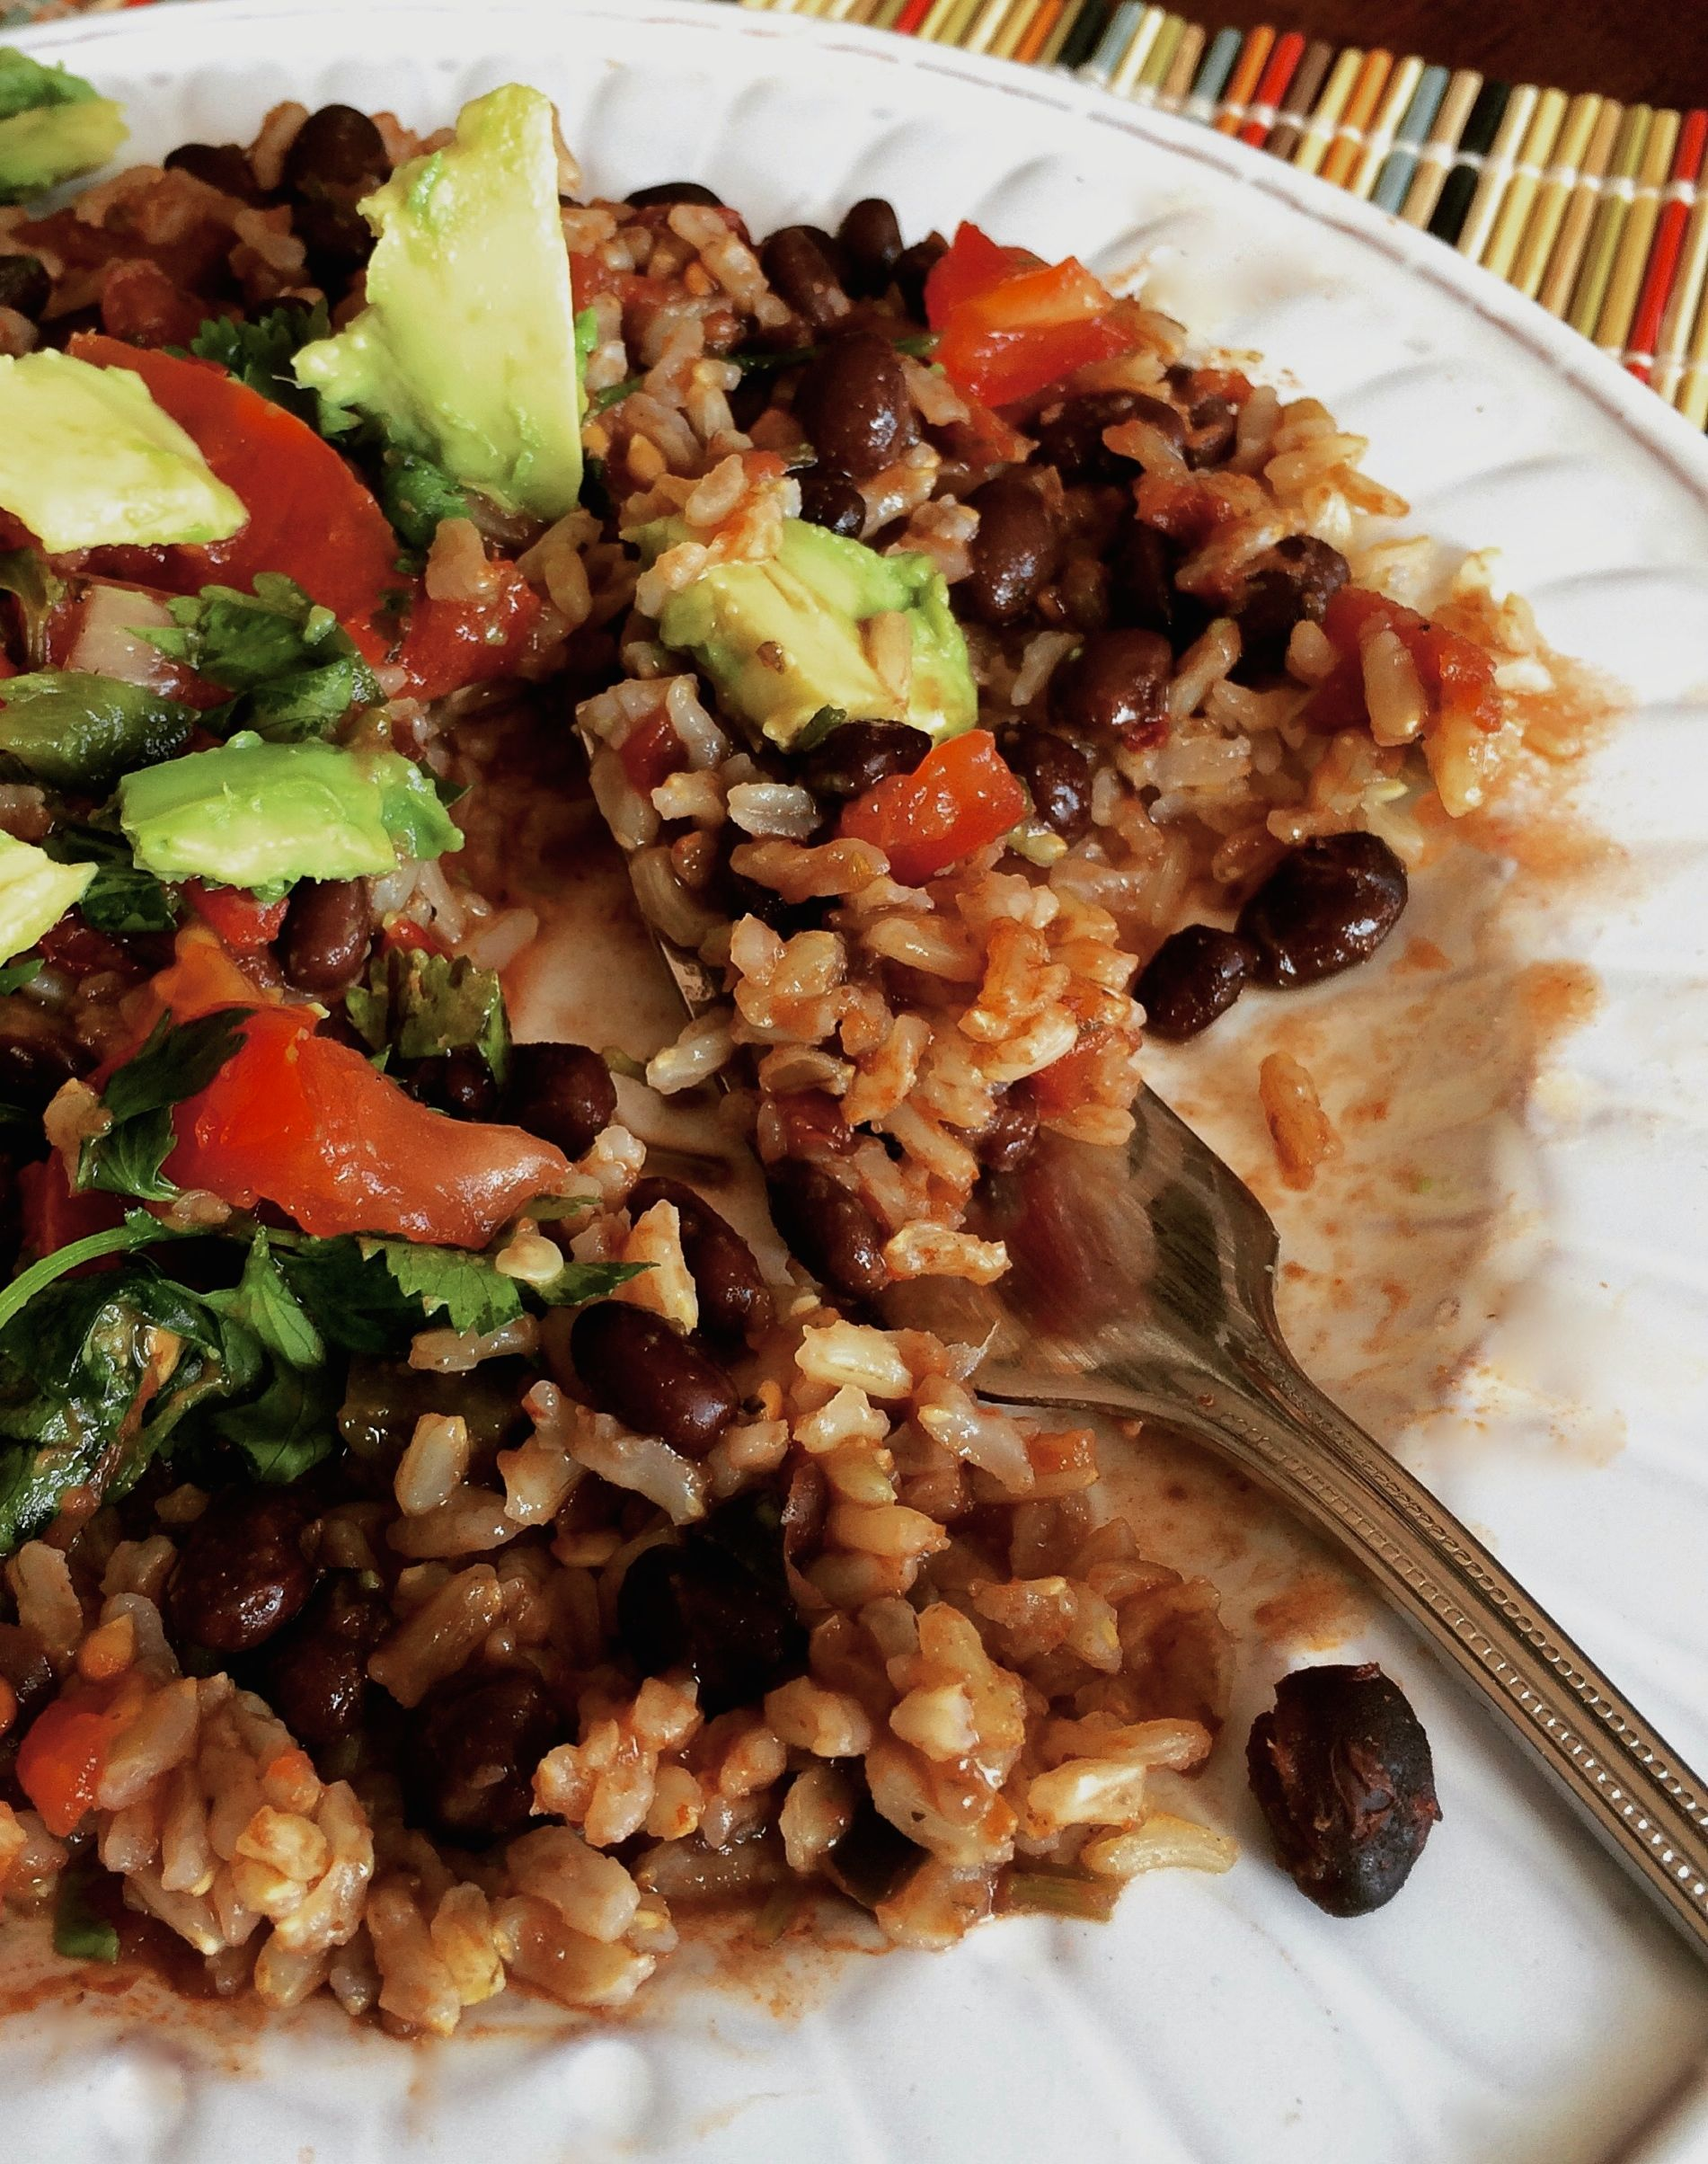 Rice and Beans |#pkway